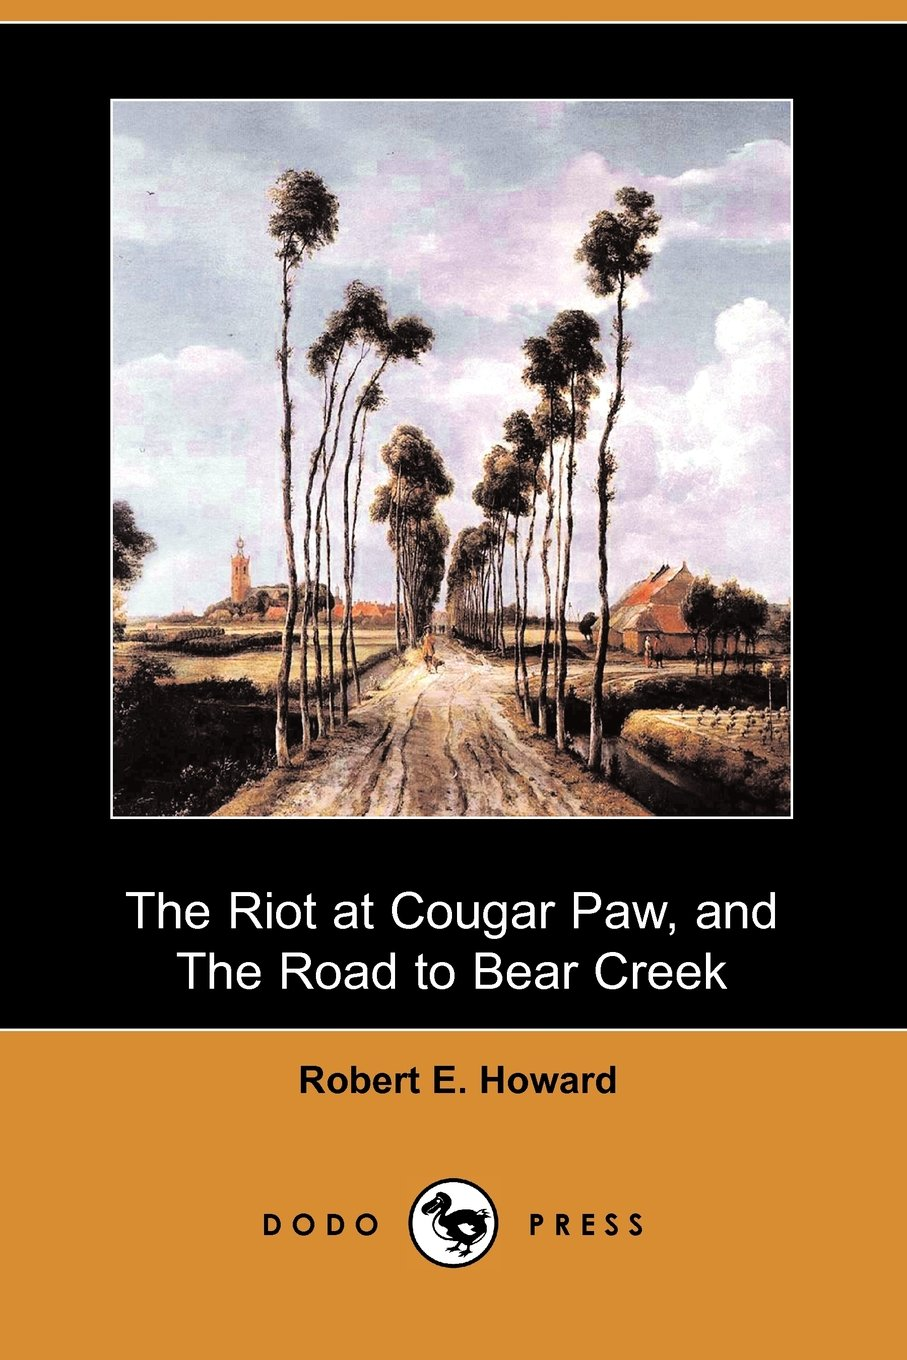 Download The Riot at Cougar Paw, and The Road to Bear Creek (Dodo Press) ebook